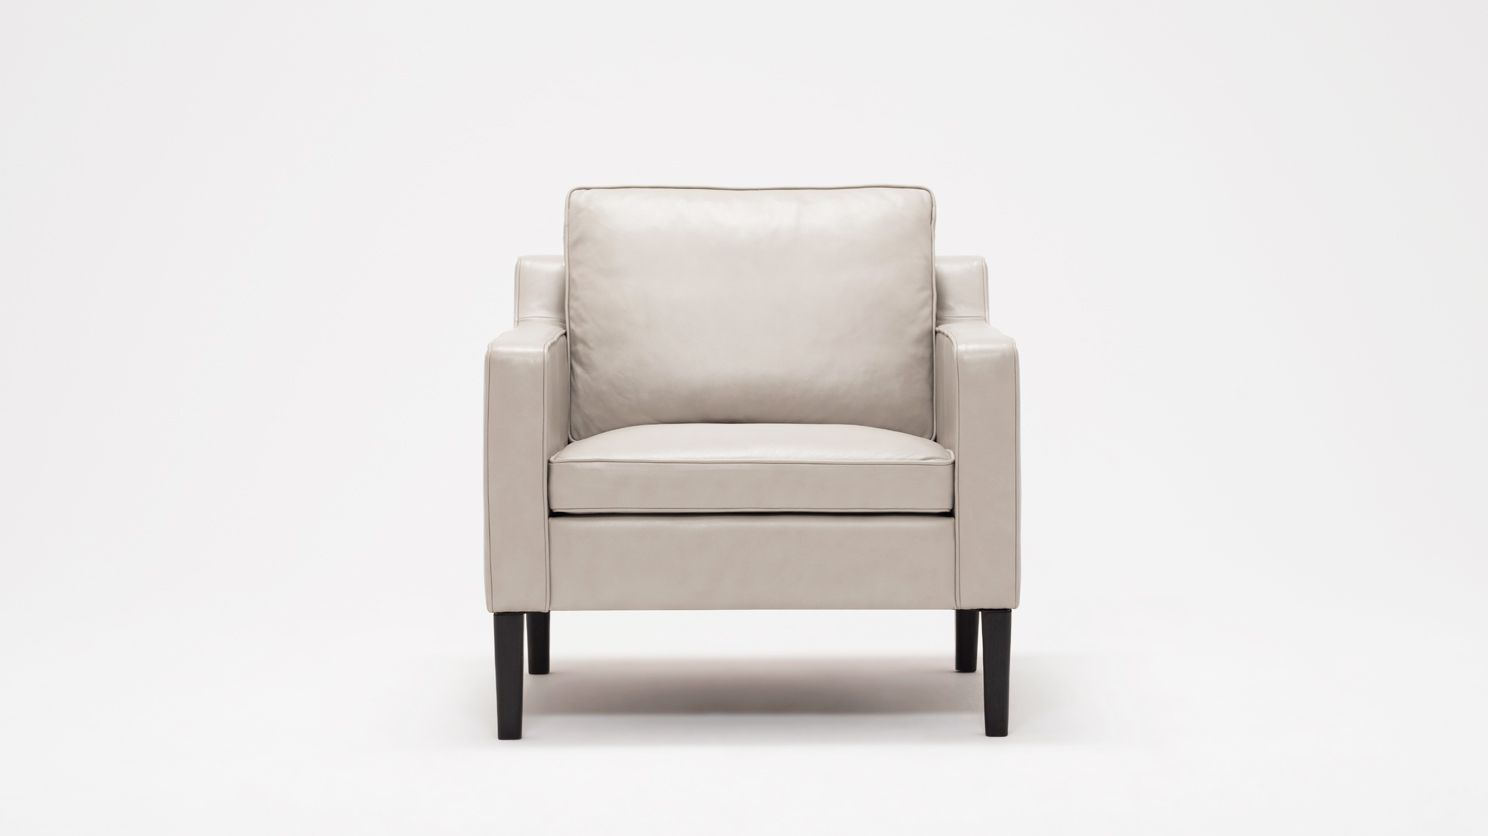 EQ3 | Skye Chair - Leather & EQ3 | Skye Chair - Leather | house | Pinterest | Room and House